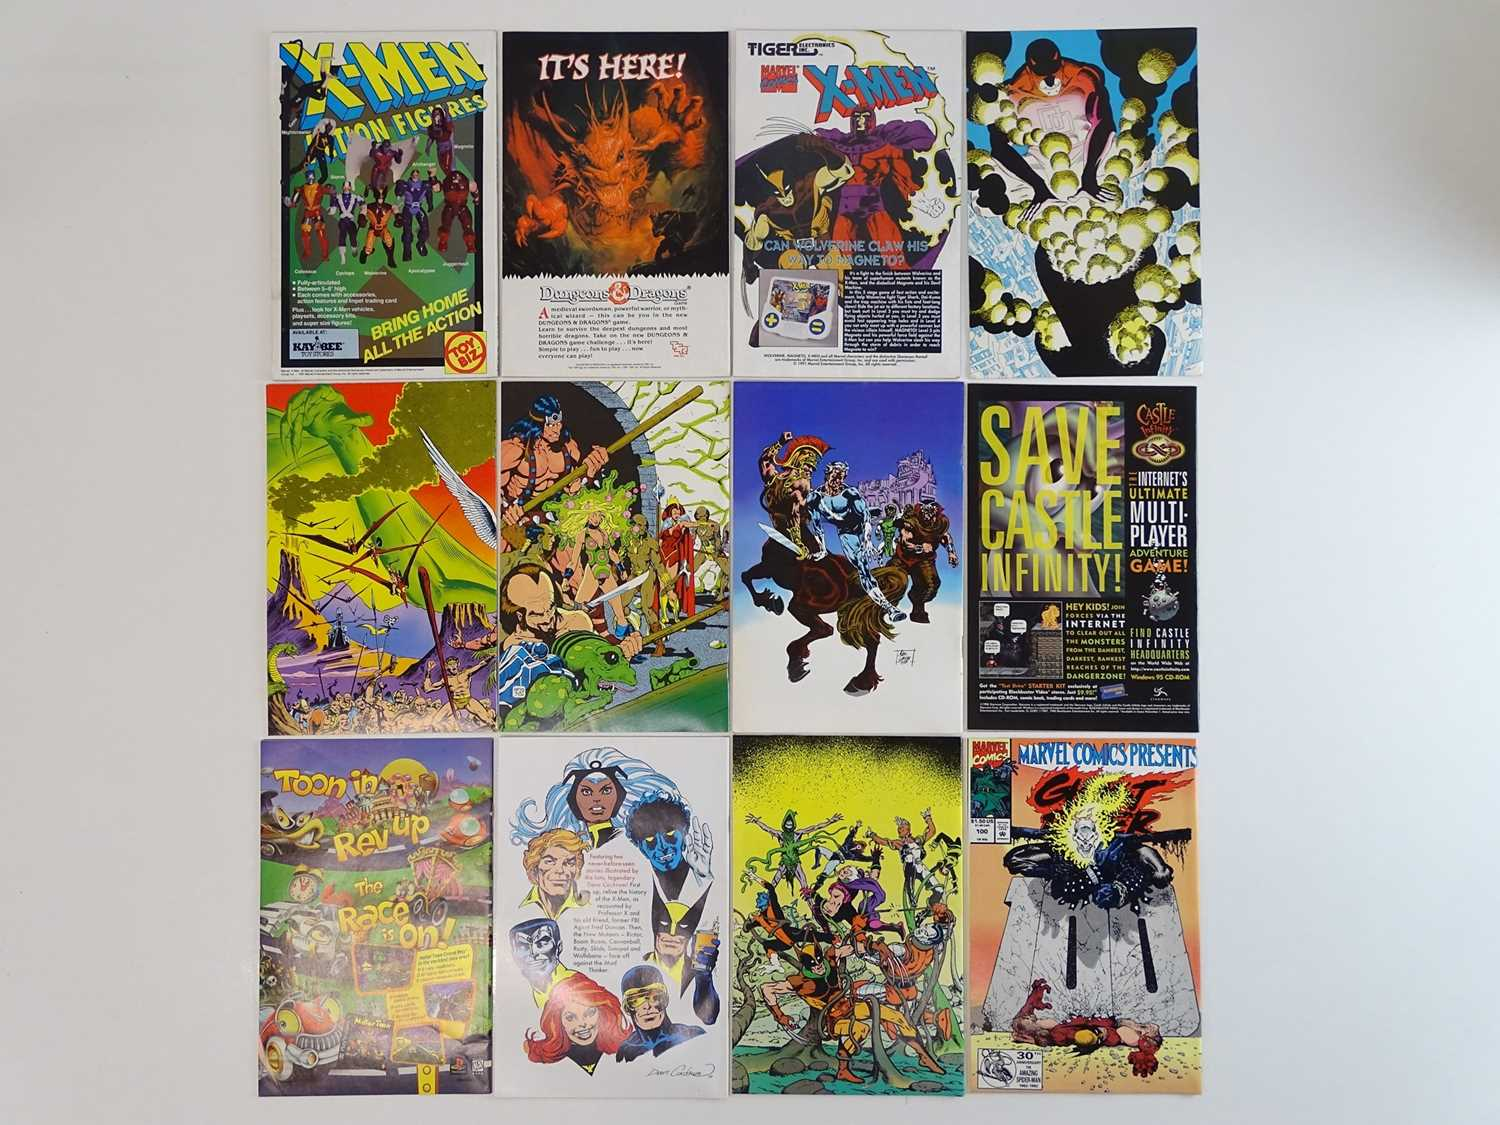 MIXED MARVEL COMICS LOT - (12 in Lot) - (MARVEL) Includes MARVEL SUPER-HEROES SPECIAL: X-MEN ( - Image 2 of 2